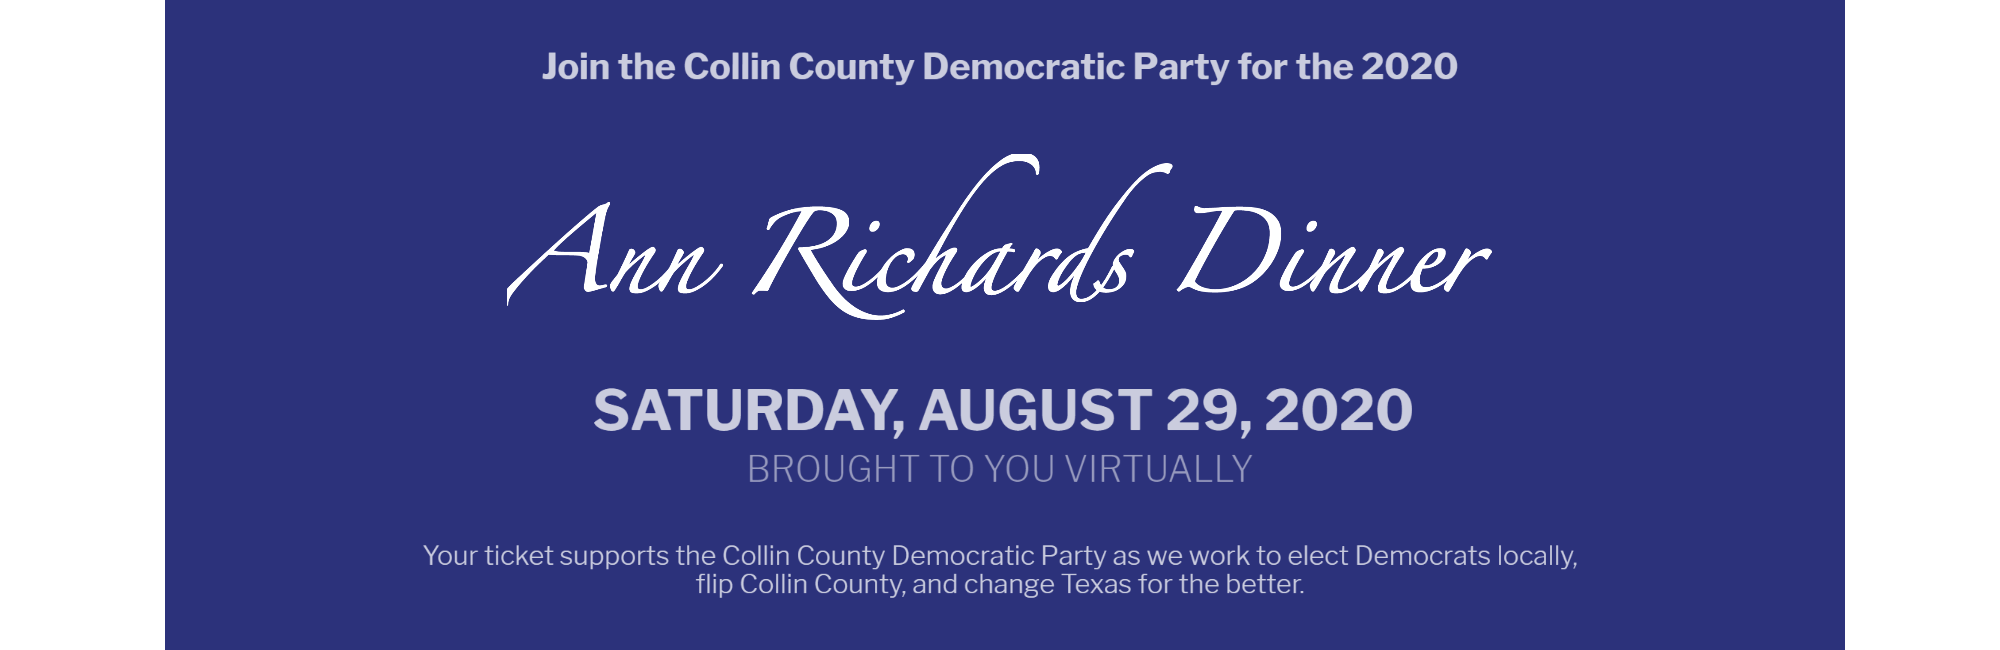 Collin County Democratic Party